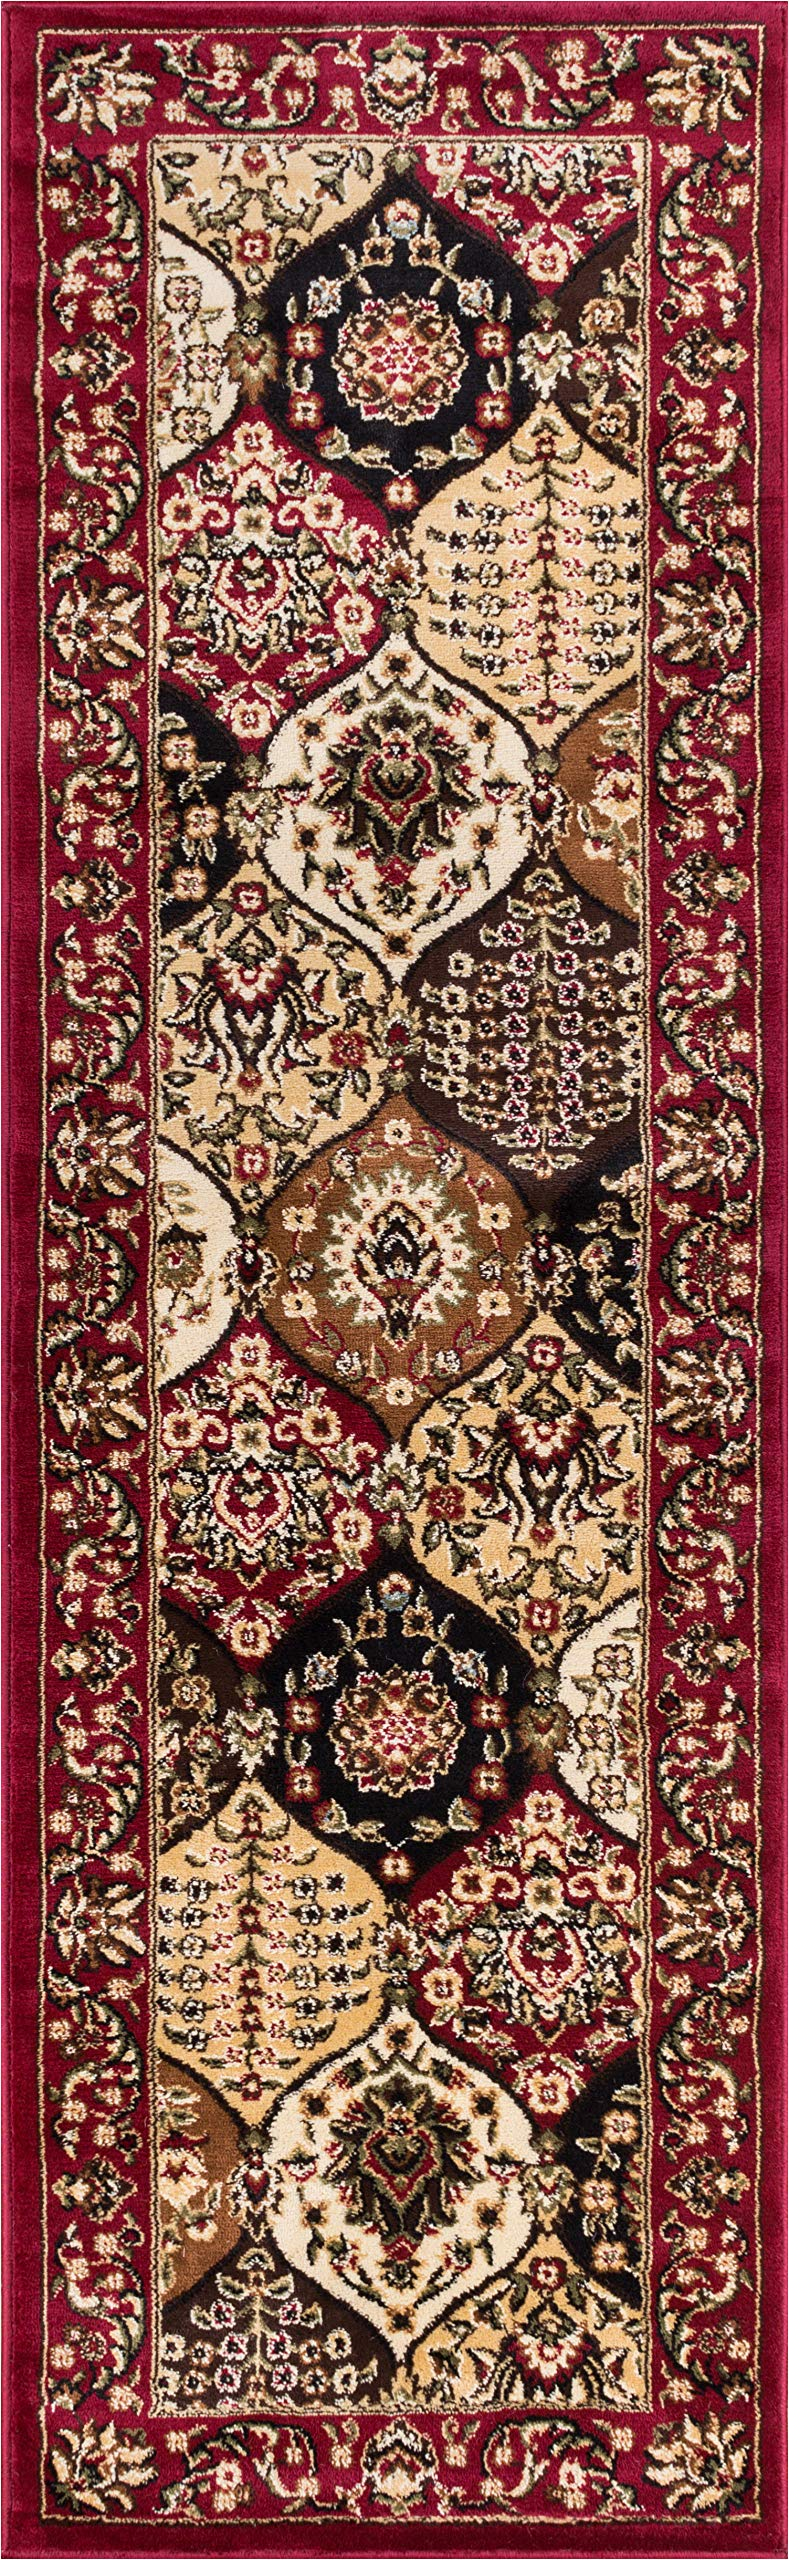 Dynasty Panel Red Multi Oriental Floral Geometric Modern Rug 3x10 ( 2'7'' x 9'6'' Runner ) Easy to Clean Stain Fade Resistant Shed Free Contemporary Formal Lattice Trellis Soft Living Dining Room Rug